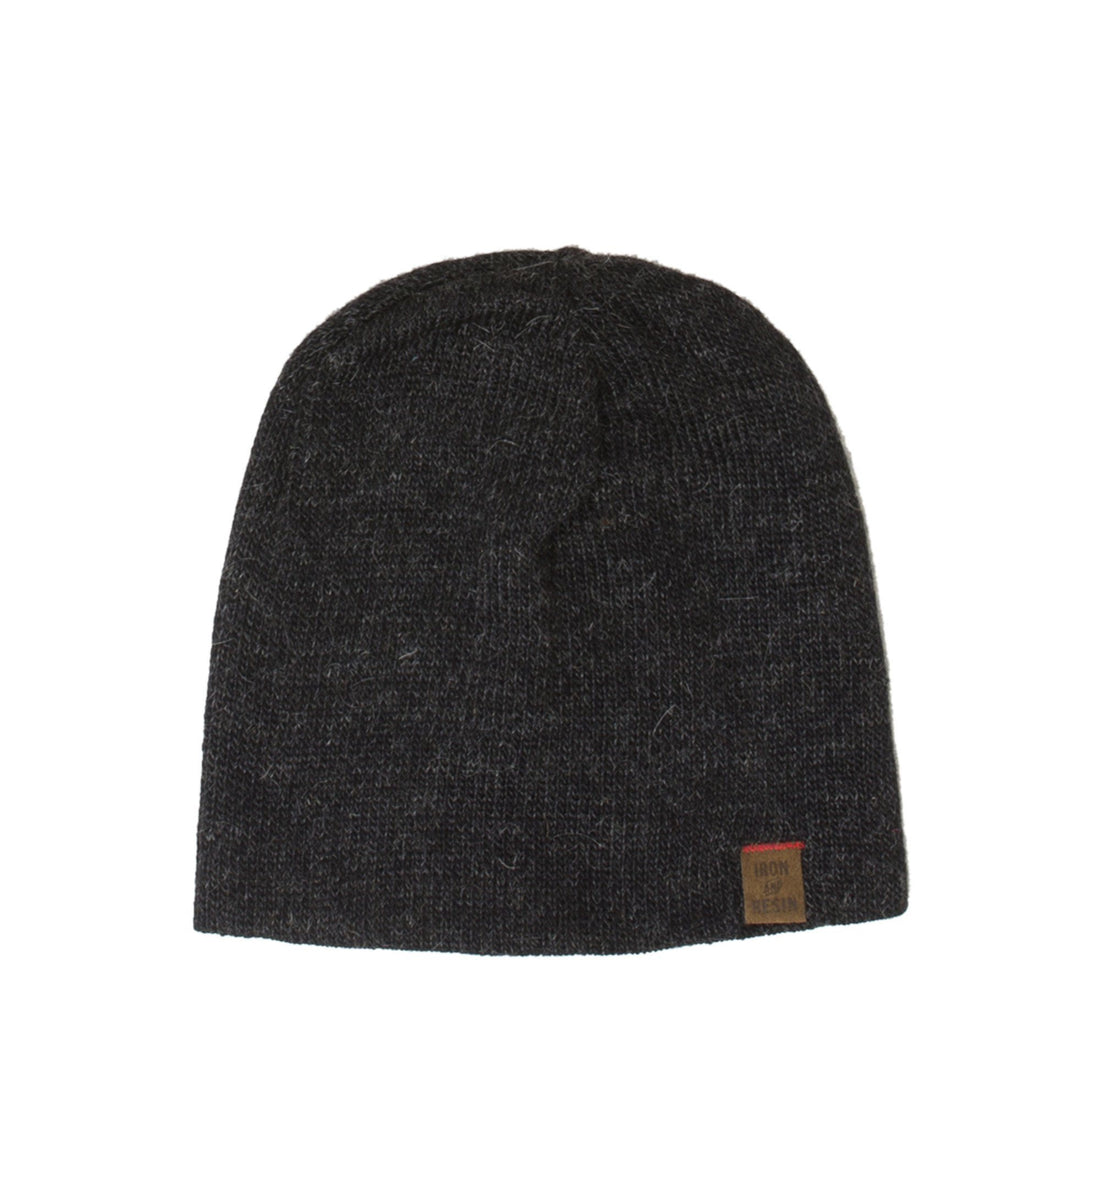 Iron & Resin Vincent Beanie - Headwear - Iron and Resin